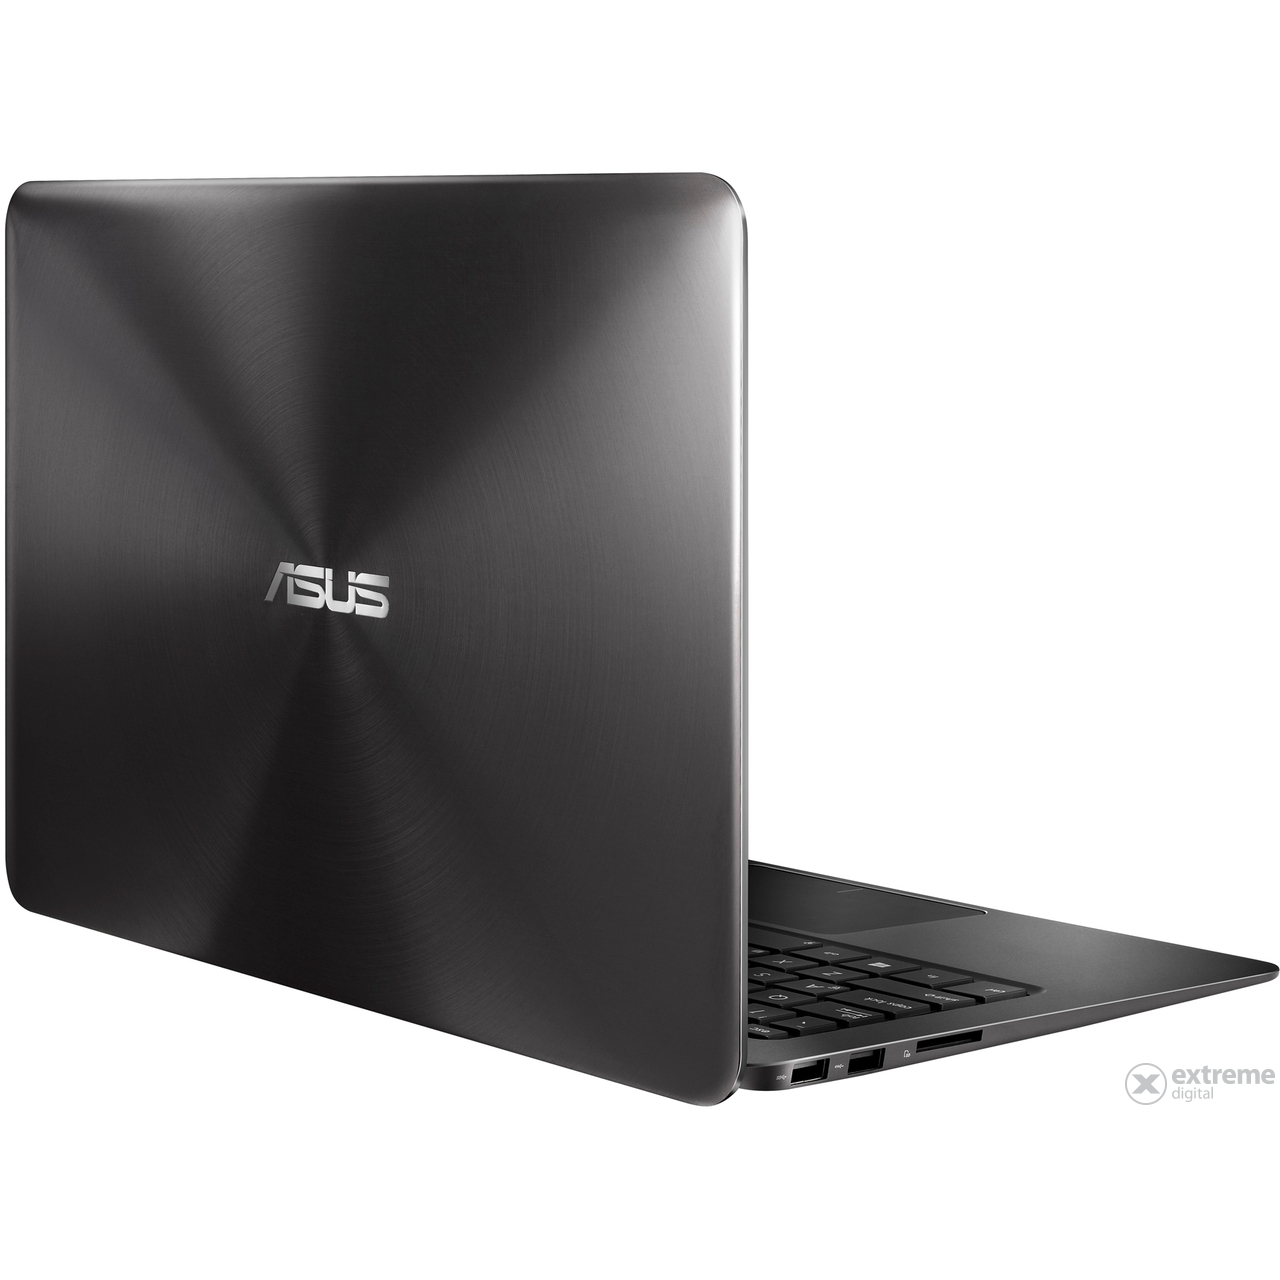 asus-zenbook-ux305la-fb019t-notebook-windows-10-fekete_506f9f53.jpg